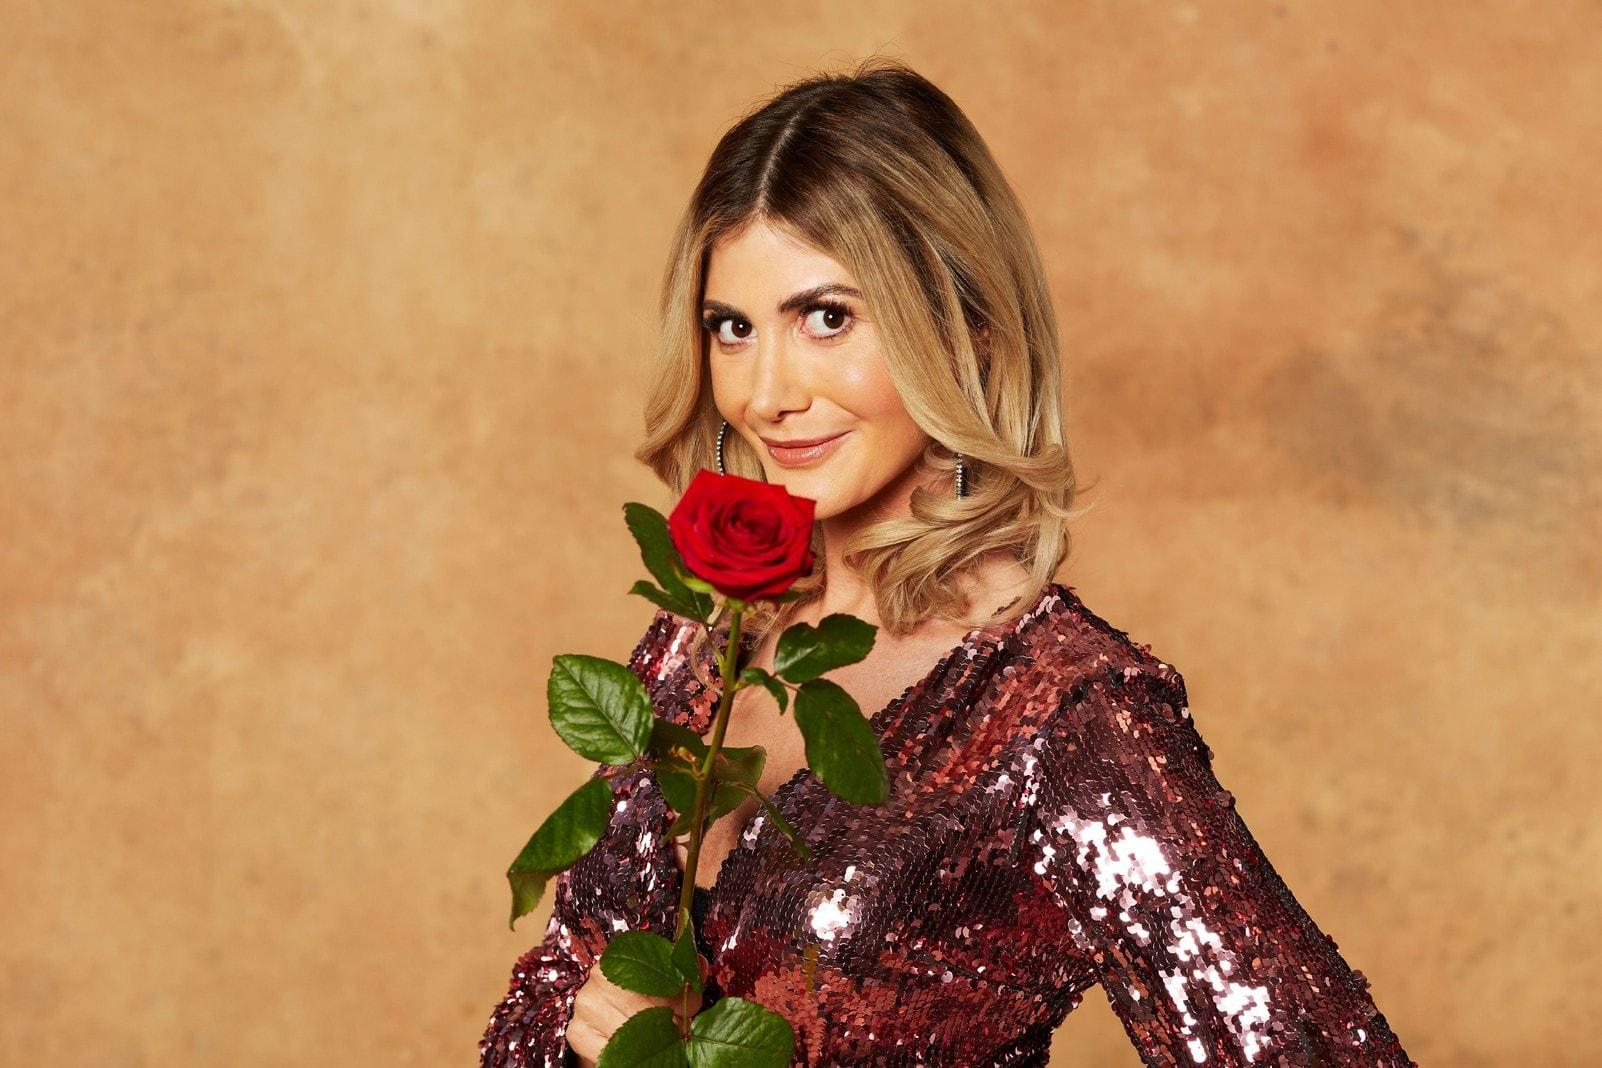 Der Bachelor Stephie Rose